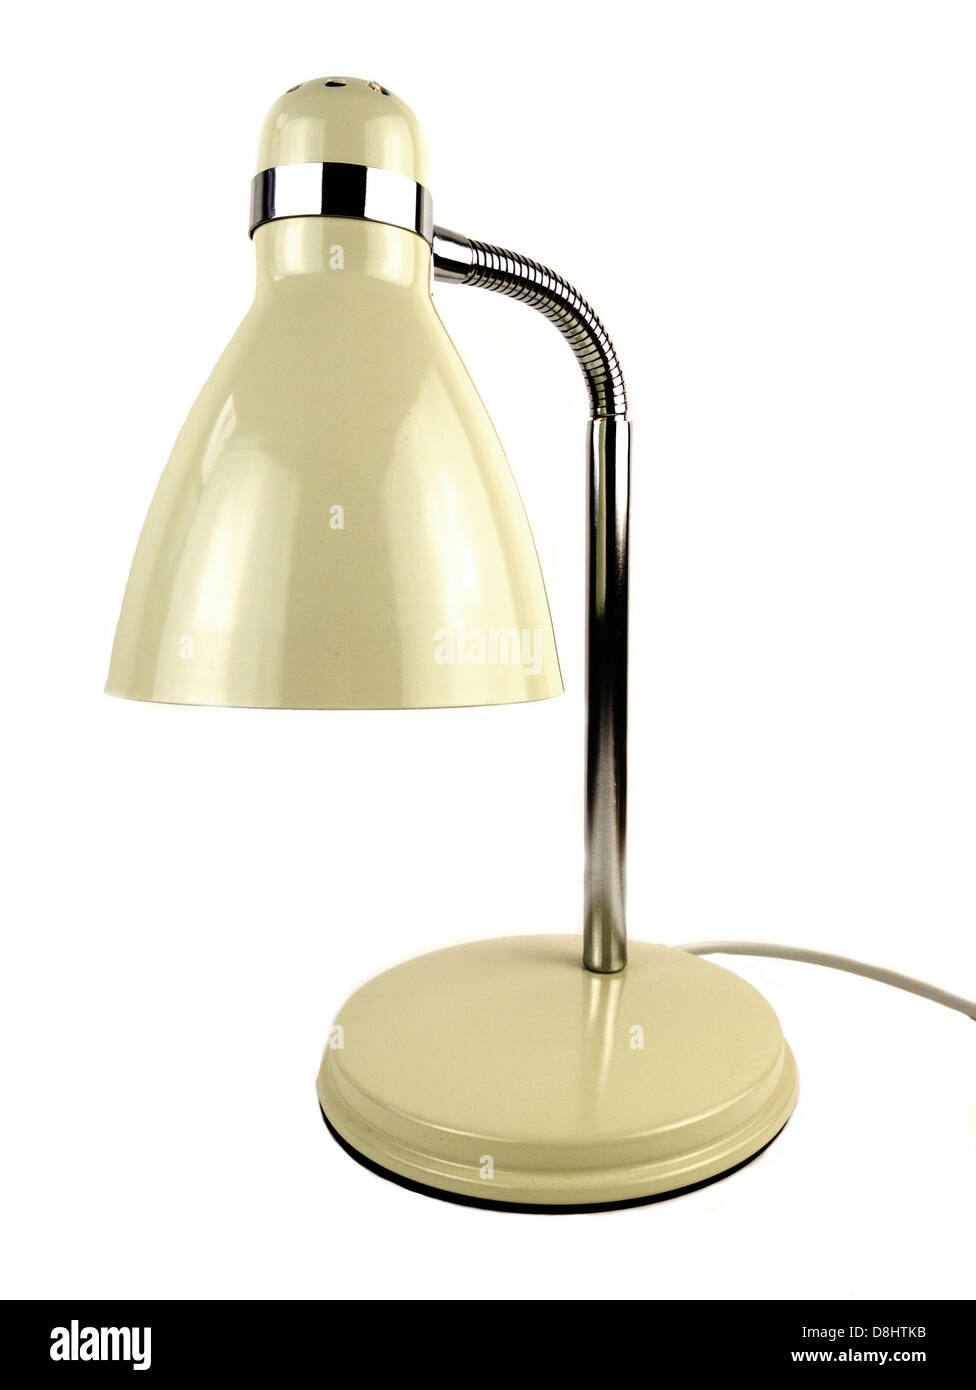 Desk lamp on a white background with cream enamel and chrome finish. - Stock Image